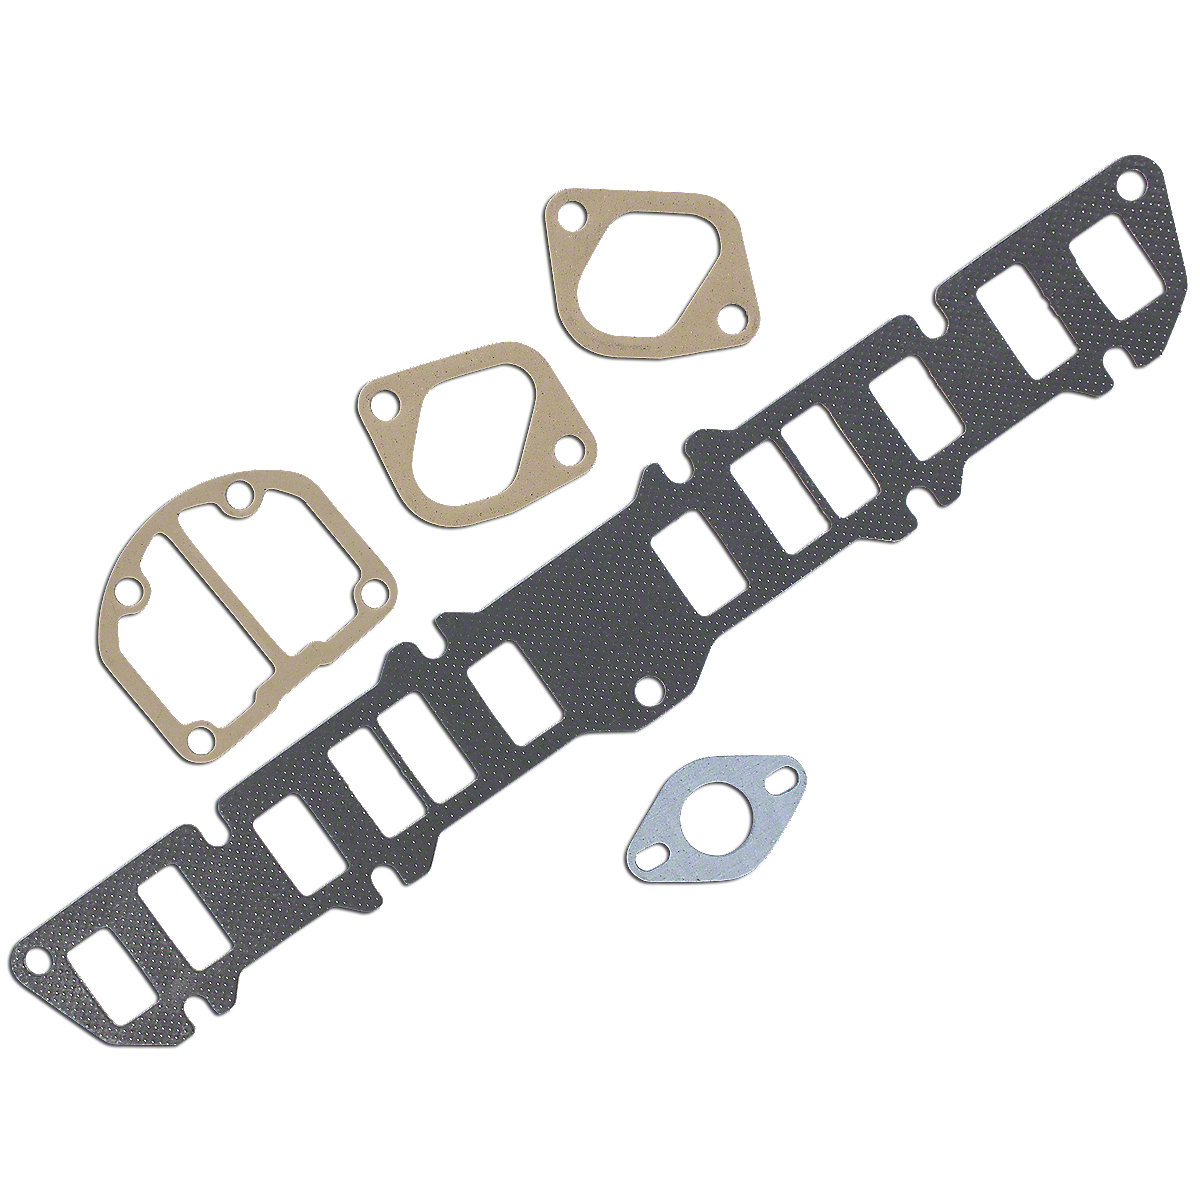 hight resolution of manifold gasket set for oliver 70 with the continental 201 c i engine